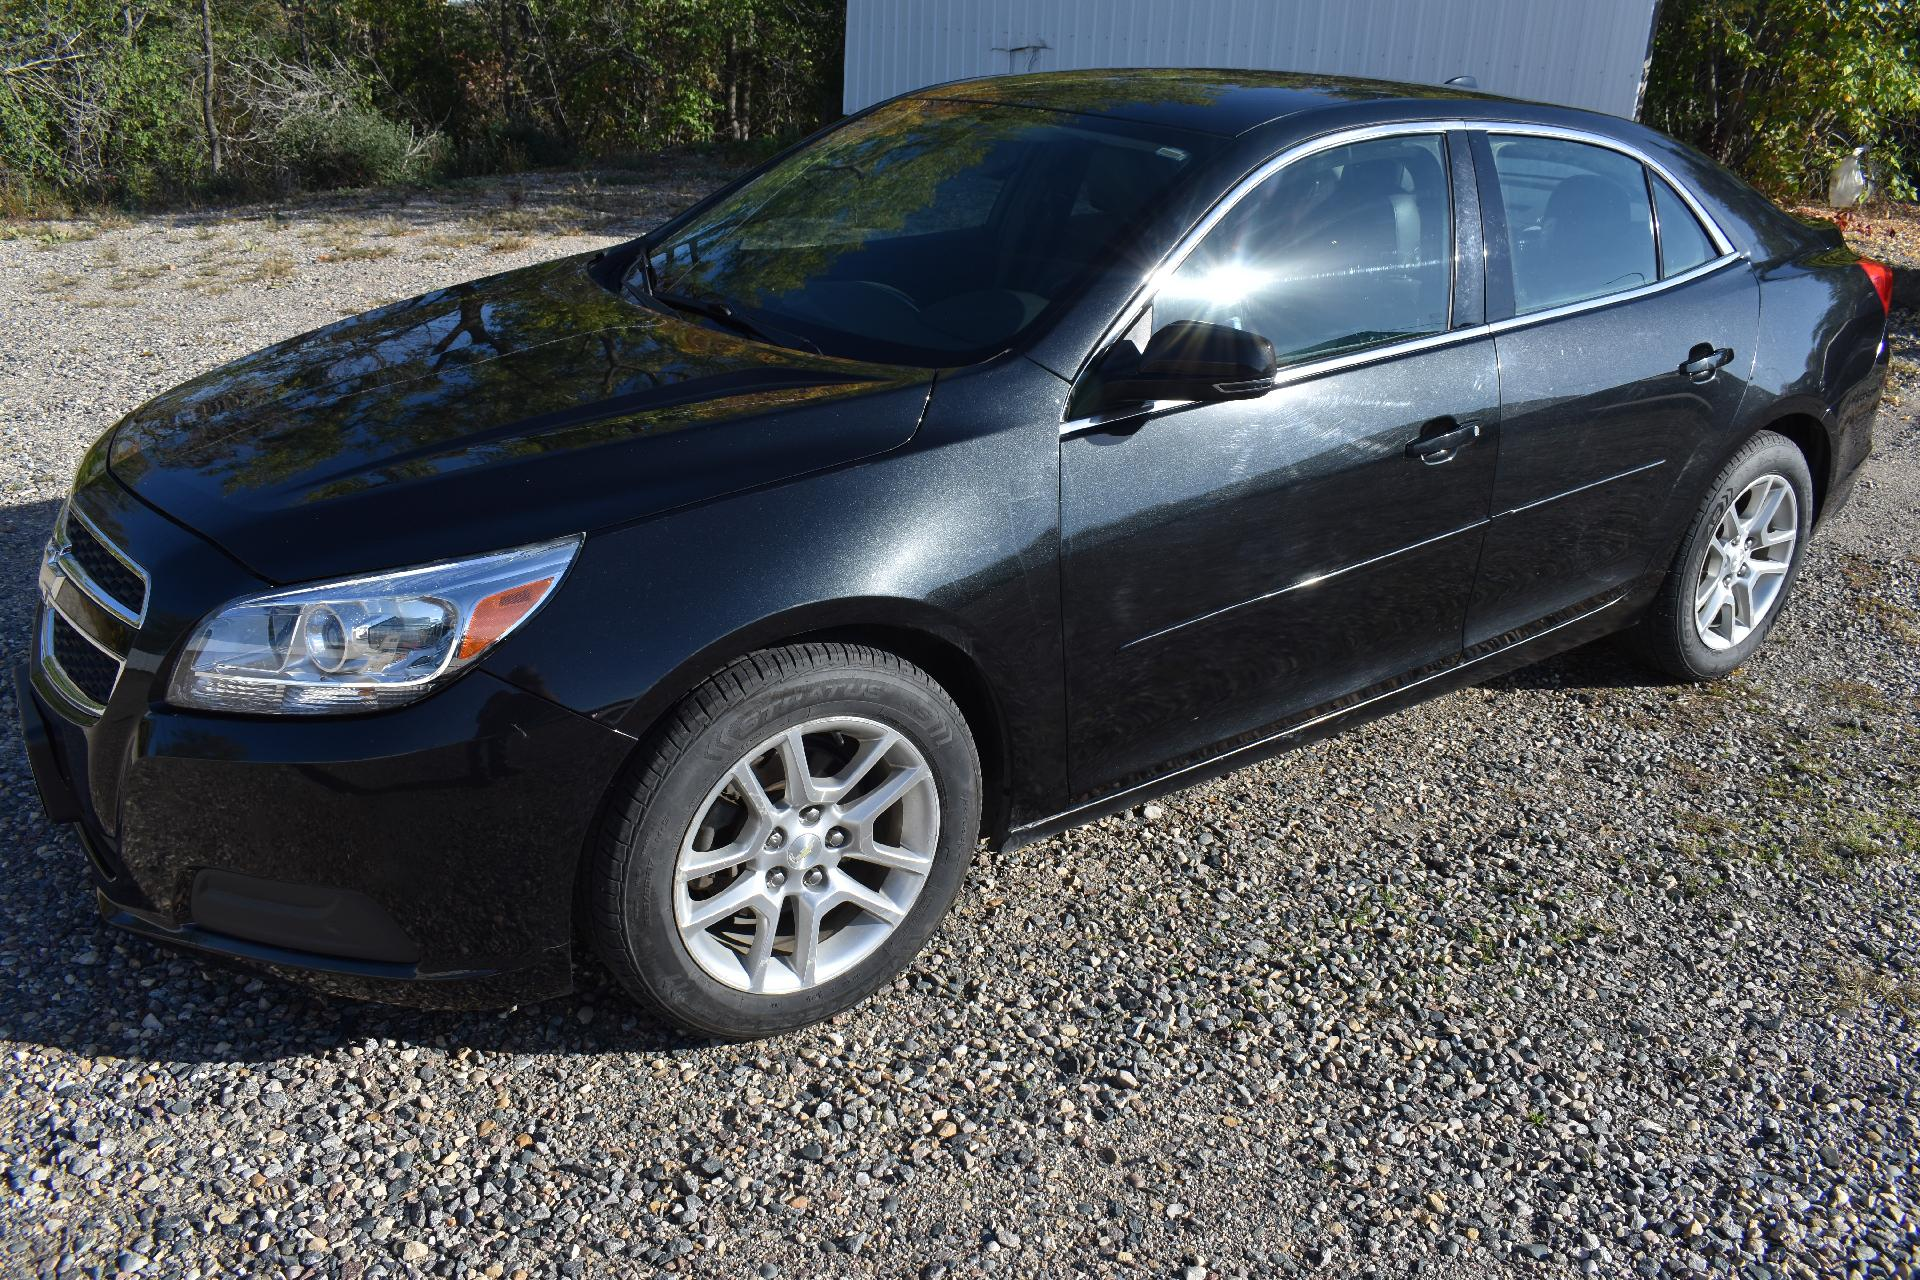 Used 2013 Chevrolet Malibu 1LT with VIN 1G11C5SA3DF178401 for sale in Red Lake Falls, Minnesota